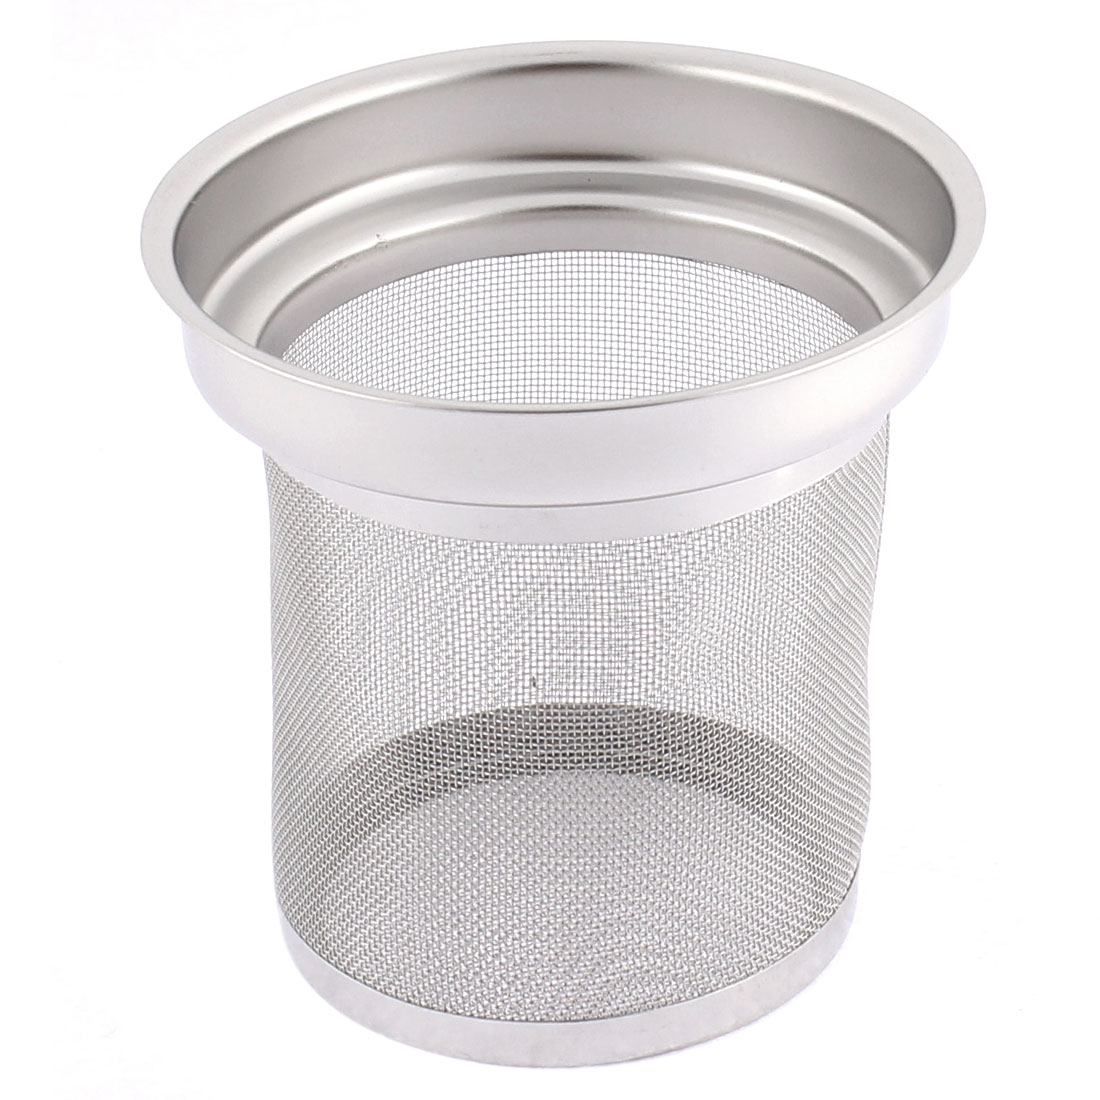 Stainless Steel Mesh Filter Loose Spice Ball Tea Infuser Strainer 74mm Dia